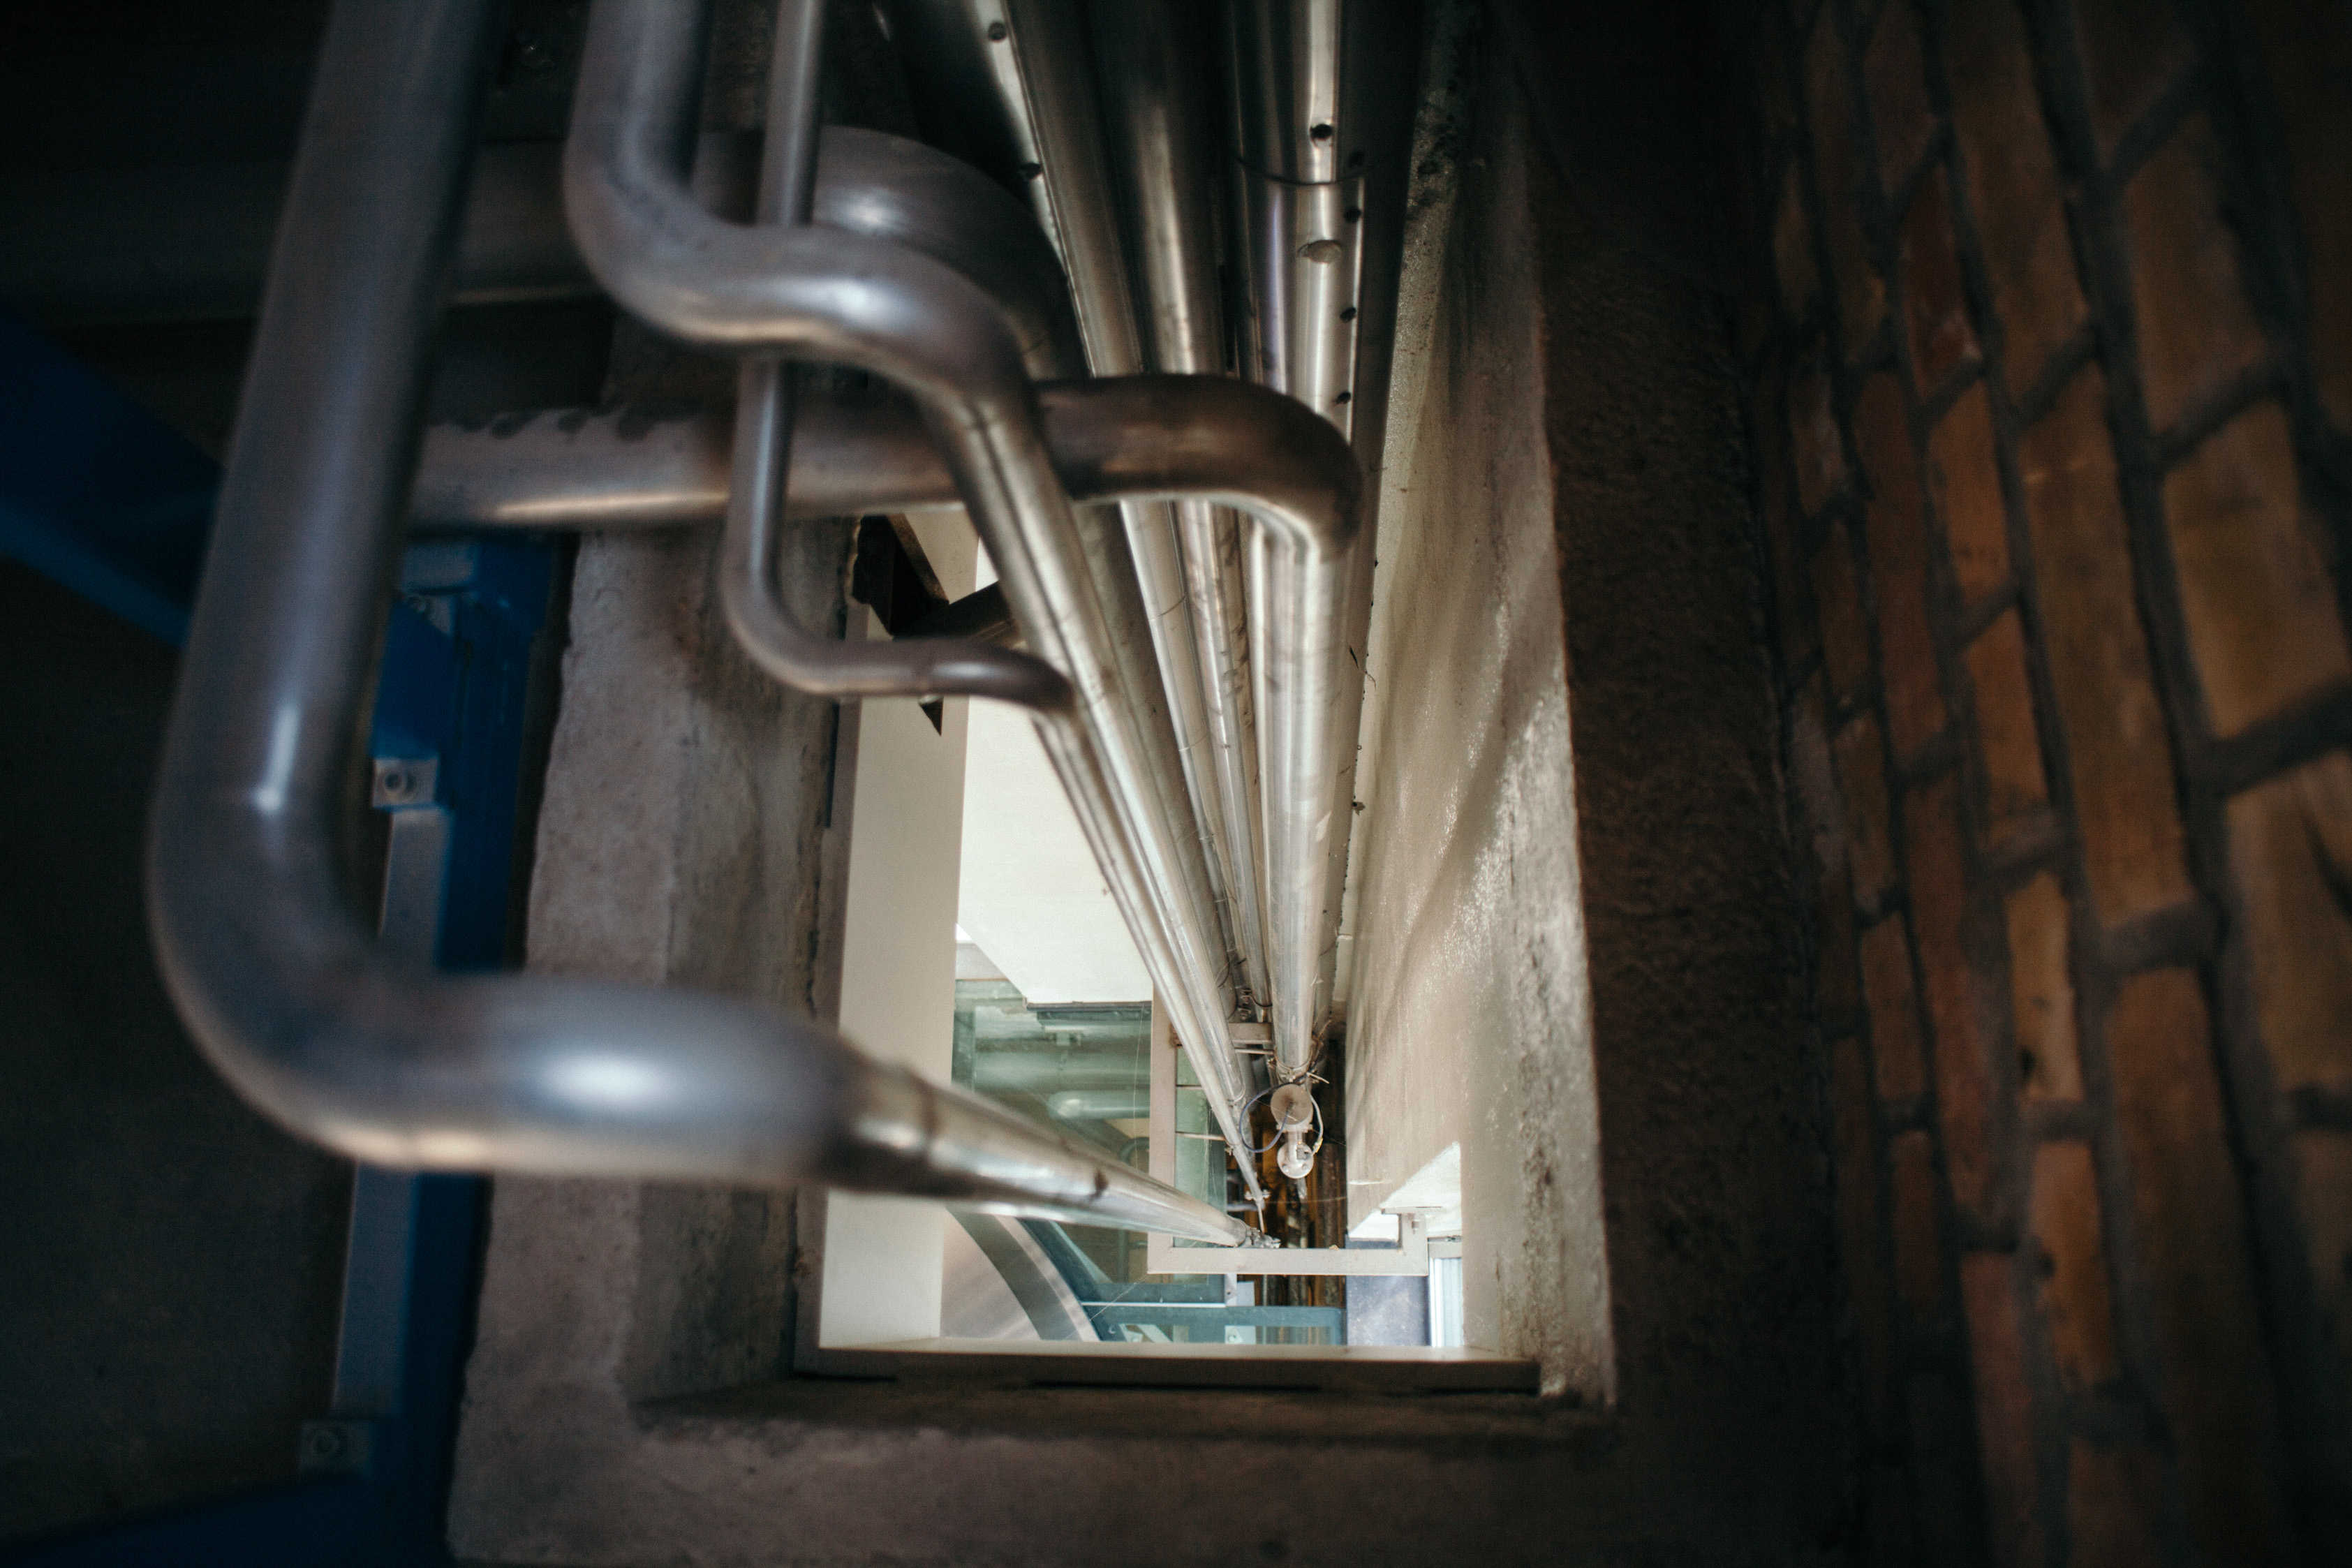 Pipes flowing vertically in Brewery De Halve Maan